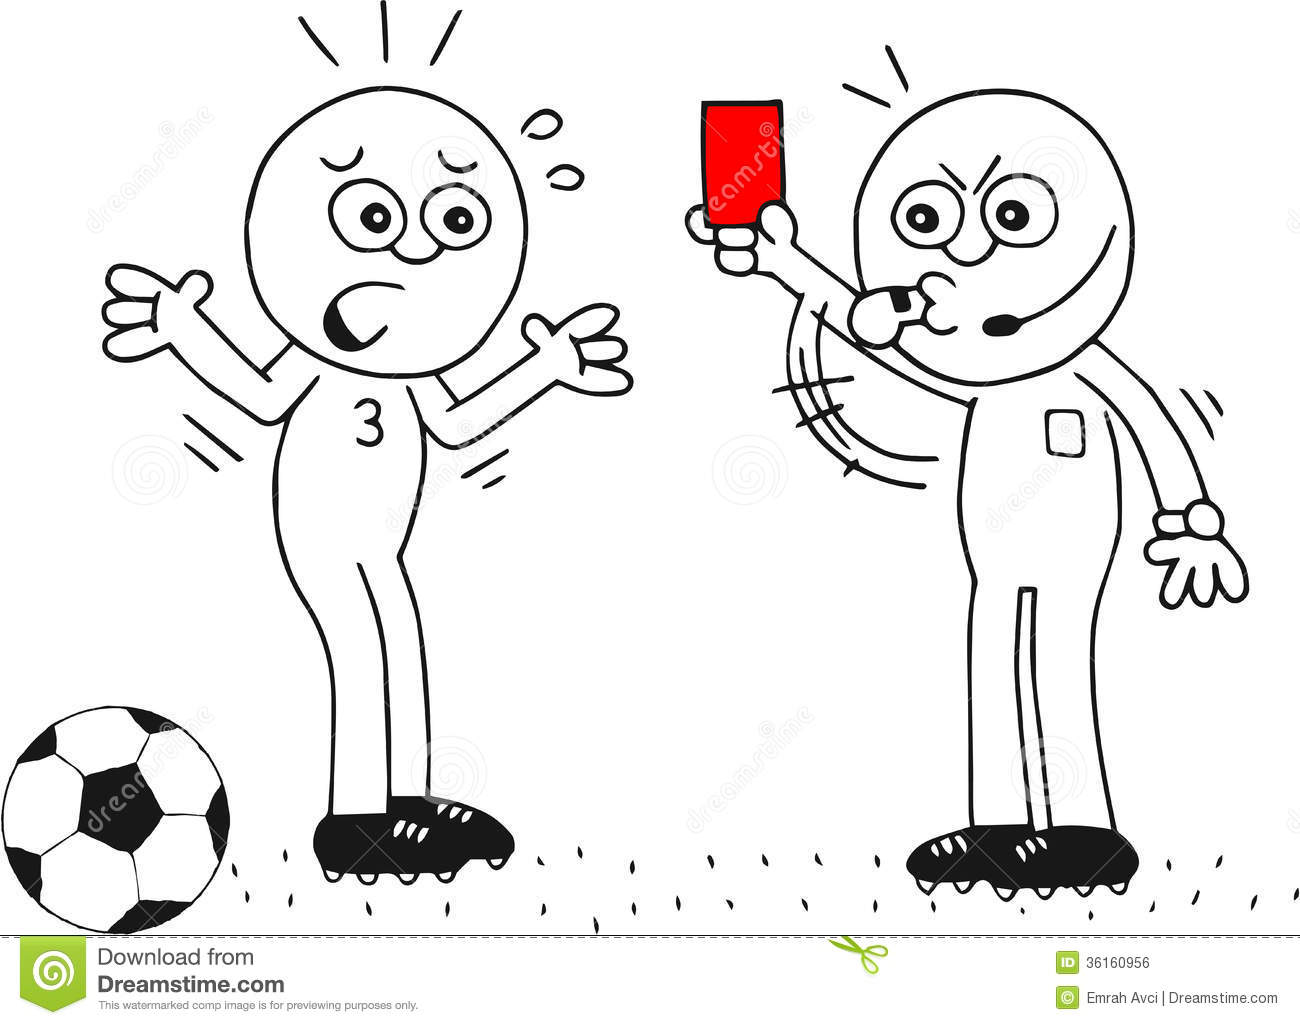 how to get a red card in soccer